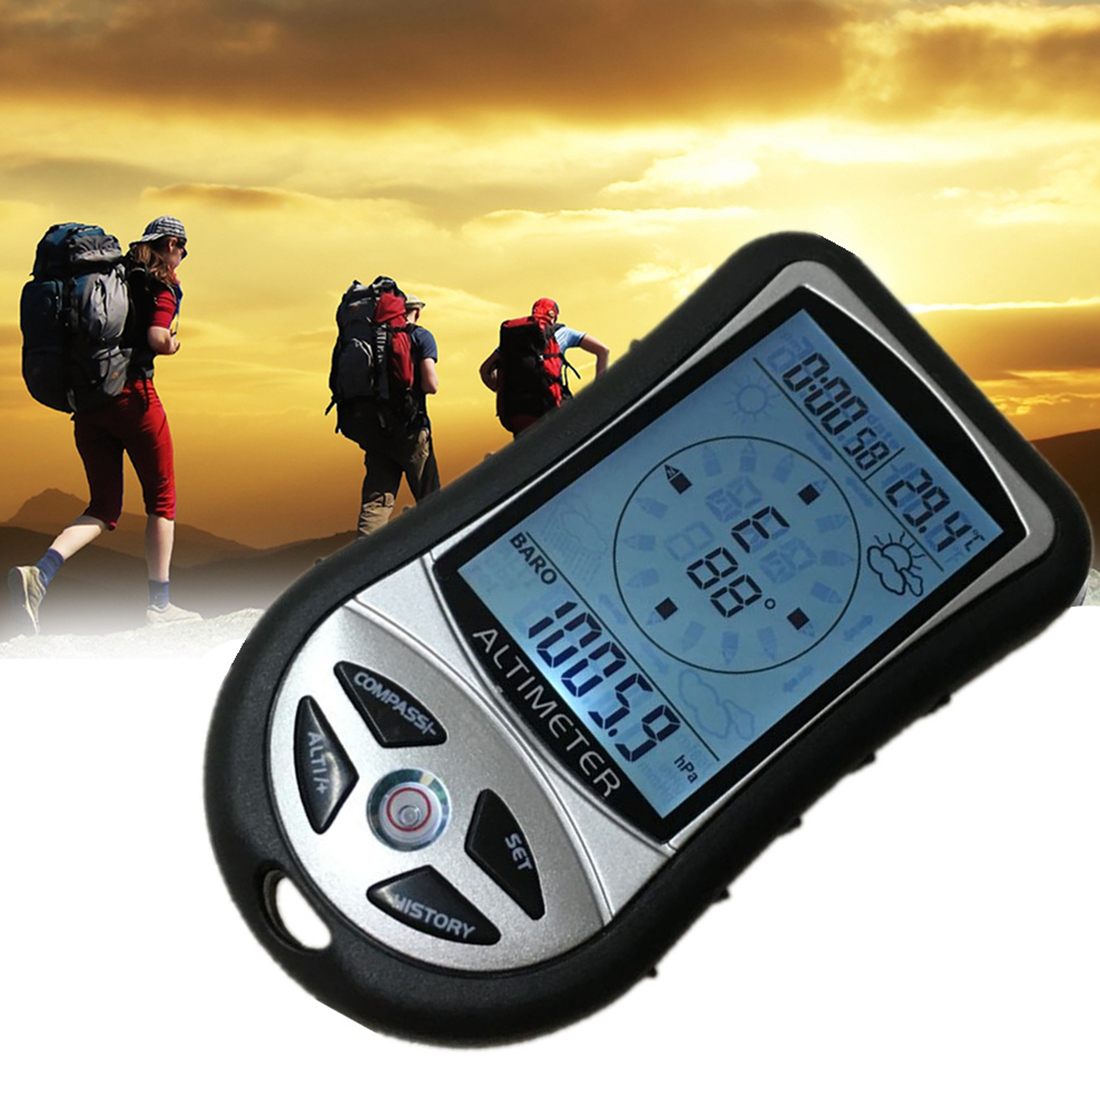 8 In 1 Compass Digital LCD Altimeter Barometer Thermometer Weather Forecast History Clock Calendar For Hiking Hunting